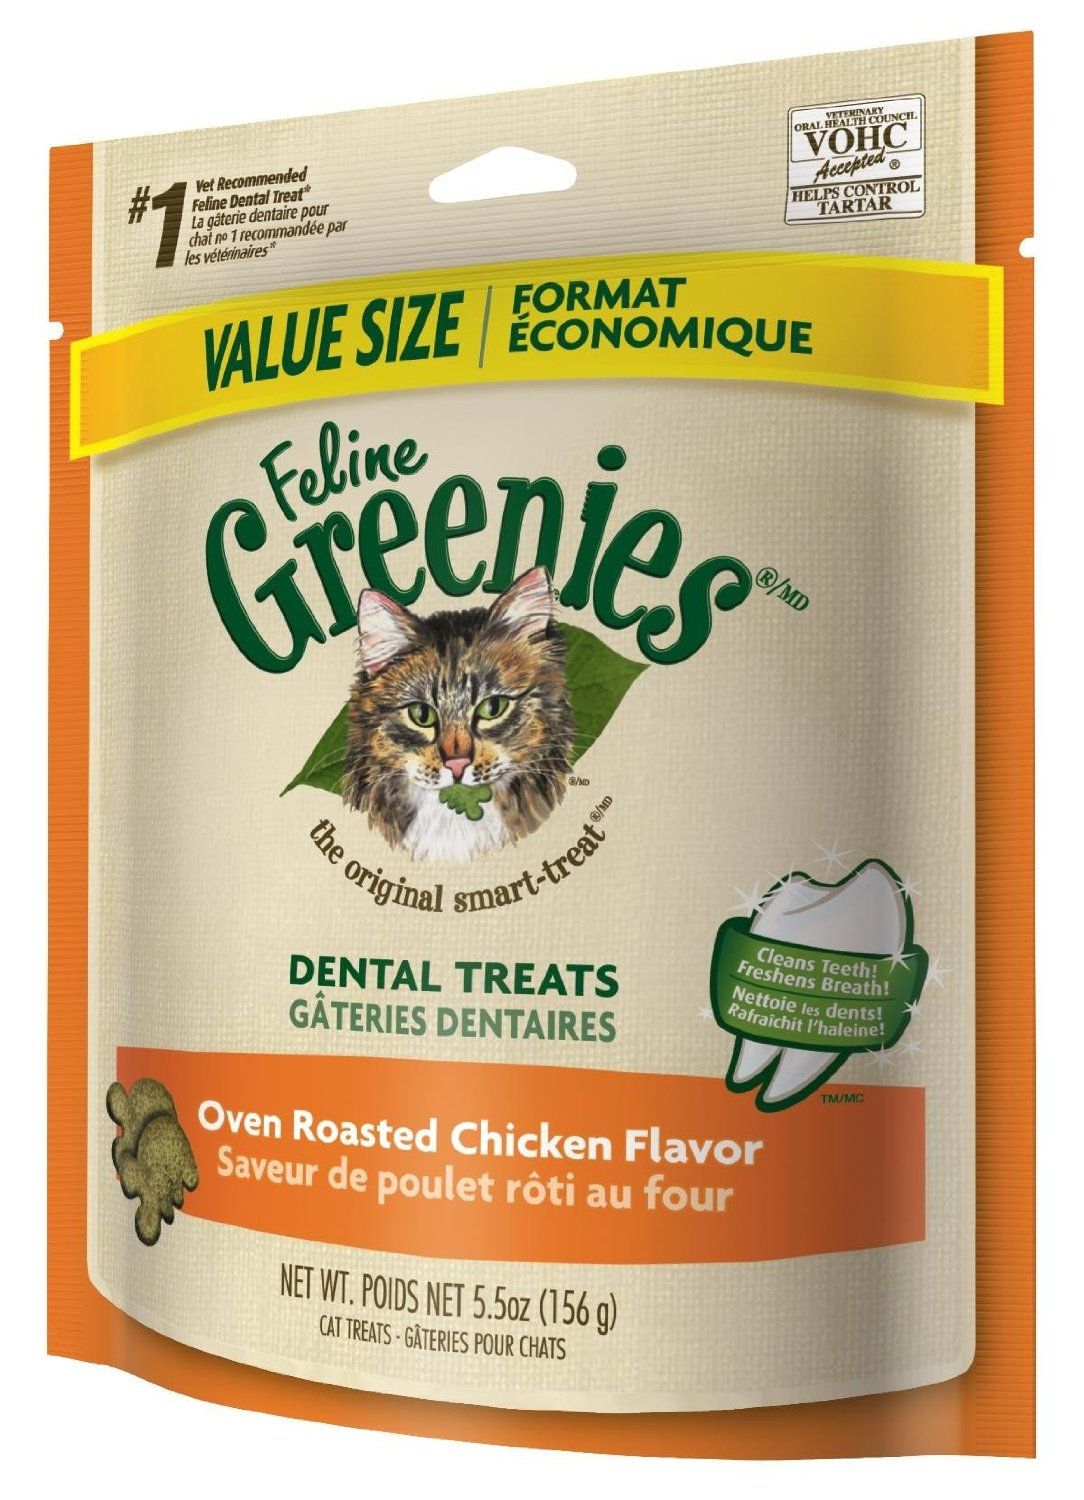 Felines Greenies